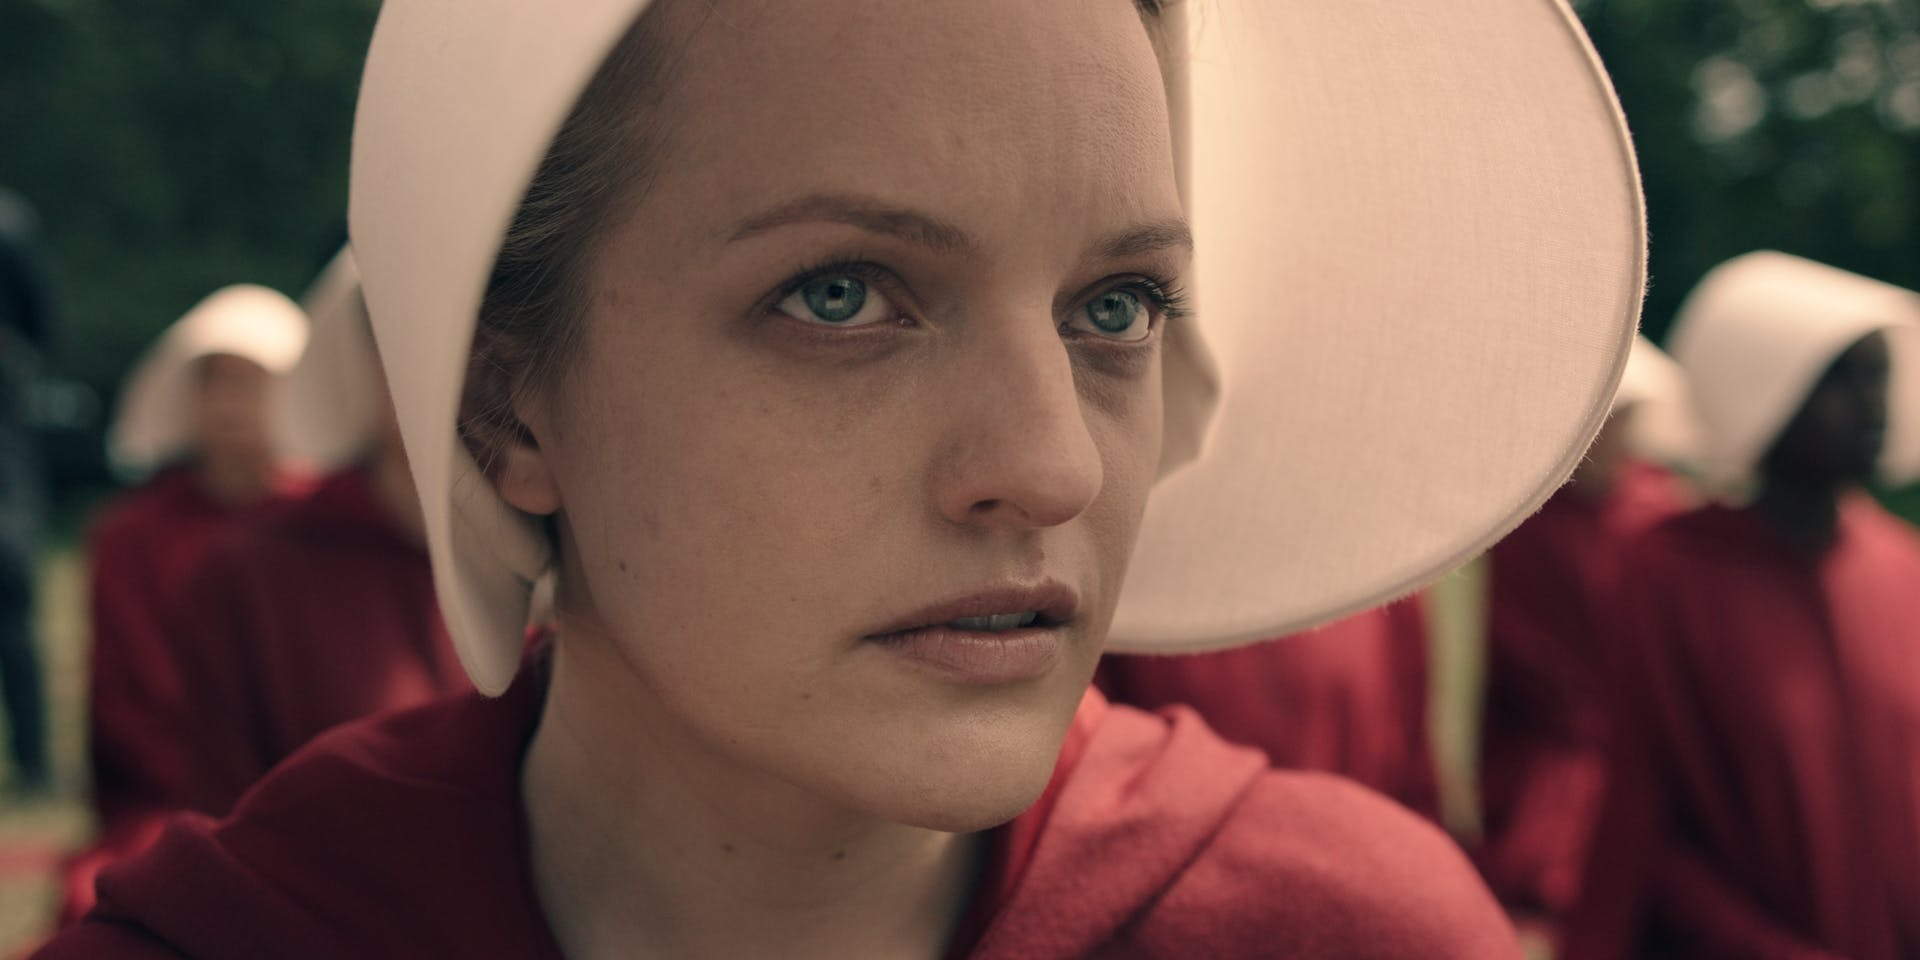 Elizabeth Moss Calls 'The Handmaid's Tale' Humanist, But It's Not